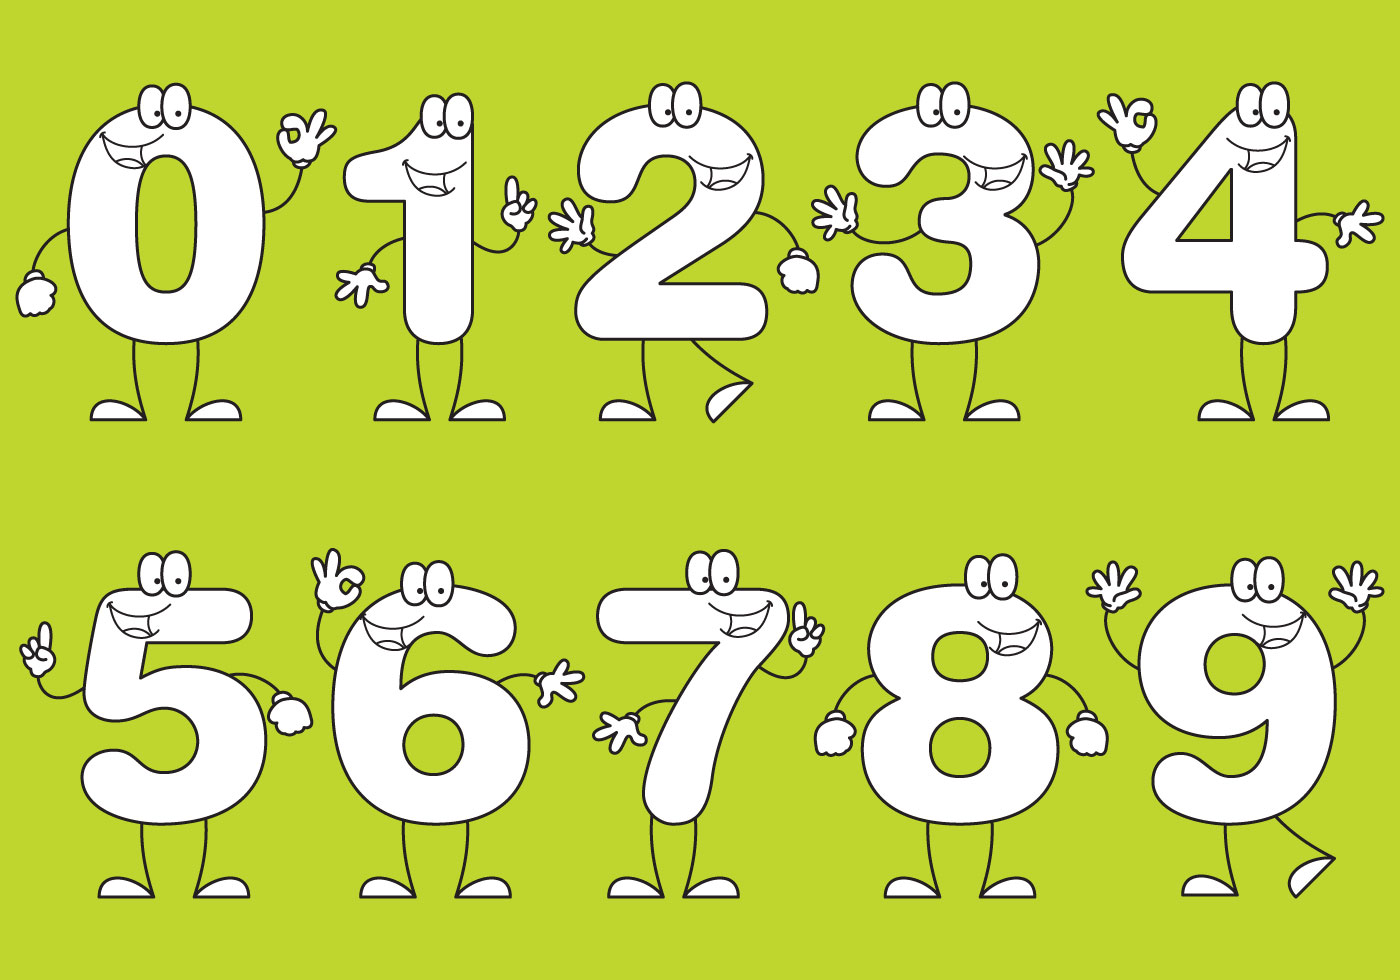 Number Cartoons - Download Free Vector Art, Stock Graphics & Images